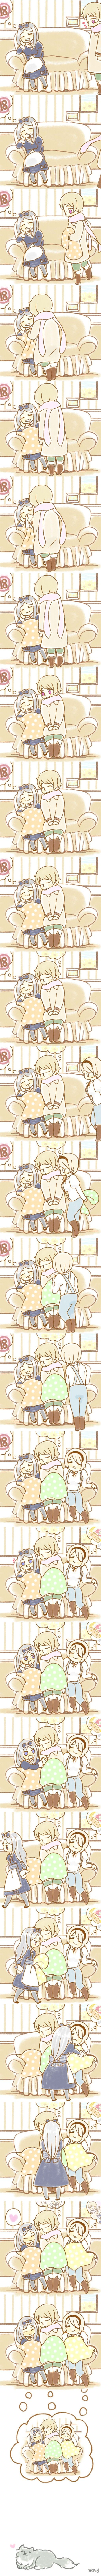 Natalia, Ivan, and Katya (head-canon name for Ukraine). This is so cute! - Artist unknown 필리핀바카라필리핀바카라필리핀바카라필리핀바카라필리핀바카라필리핀바카라필리핀바카라필리핀바카라필리핀바카라필리핀바카라필리핀바카라필리핀바카라필리핀바카라필리핀바카라필리핀바카라필리핀바카라필리핀바카라필리핀바카라필리핀바카라필리핀바카라필리핀바카라